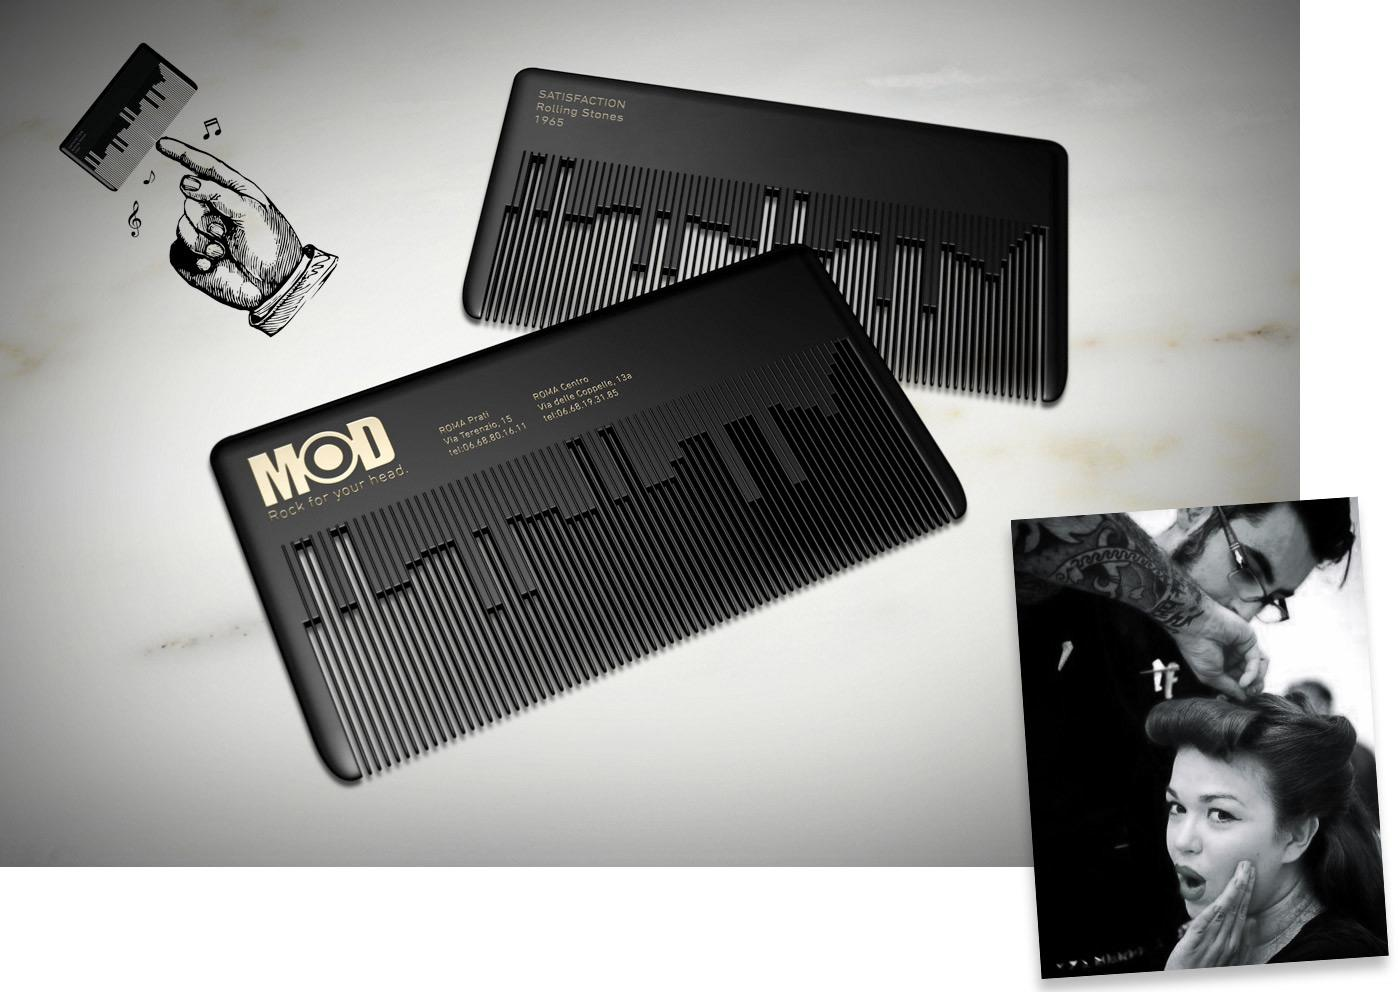 Musical comb businesscard